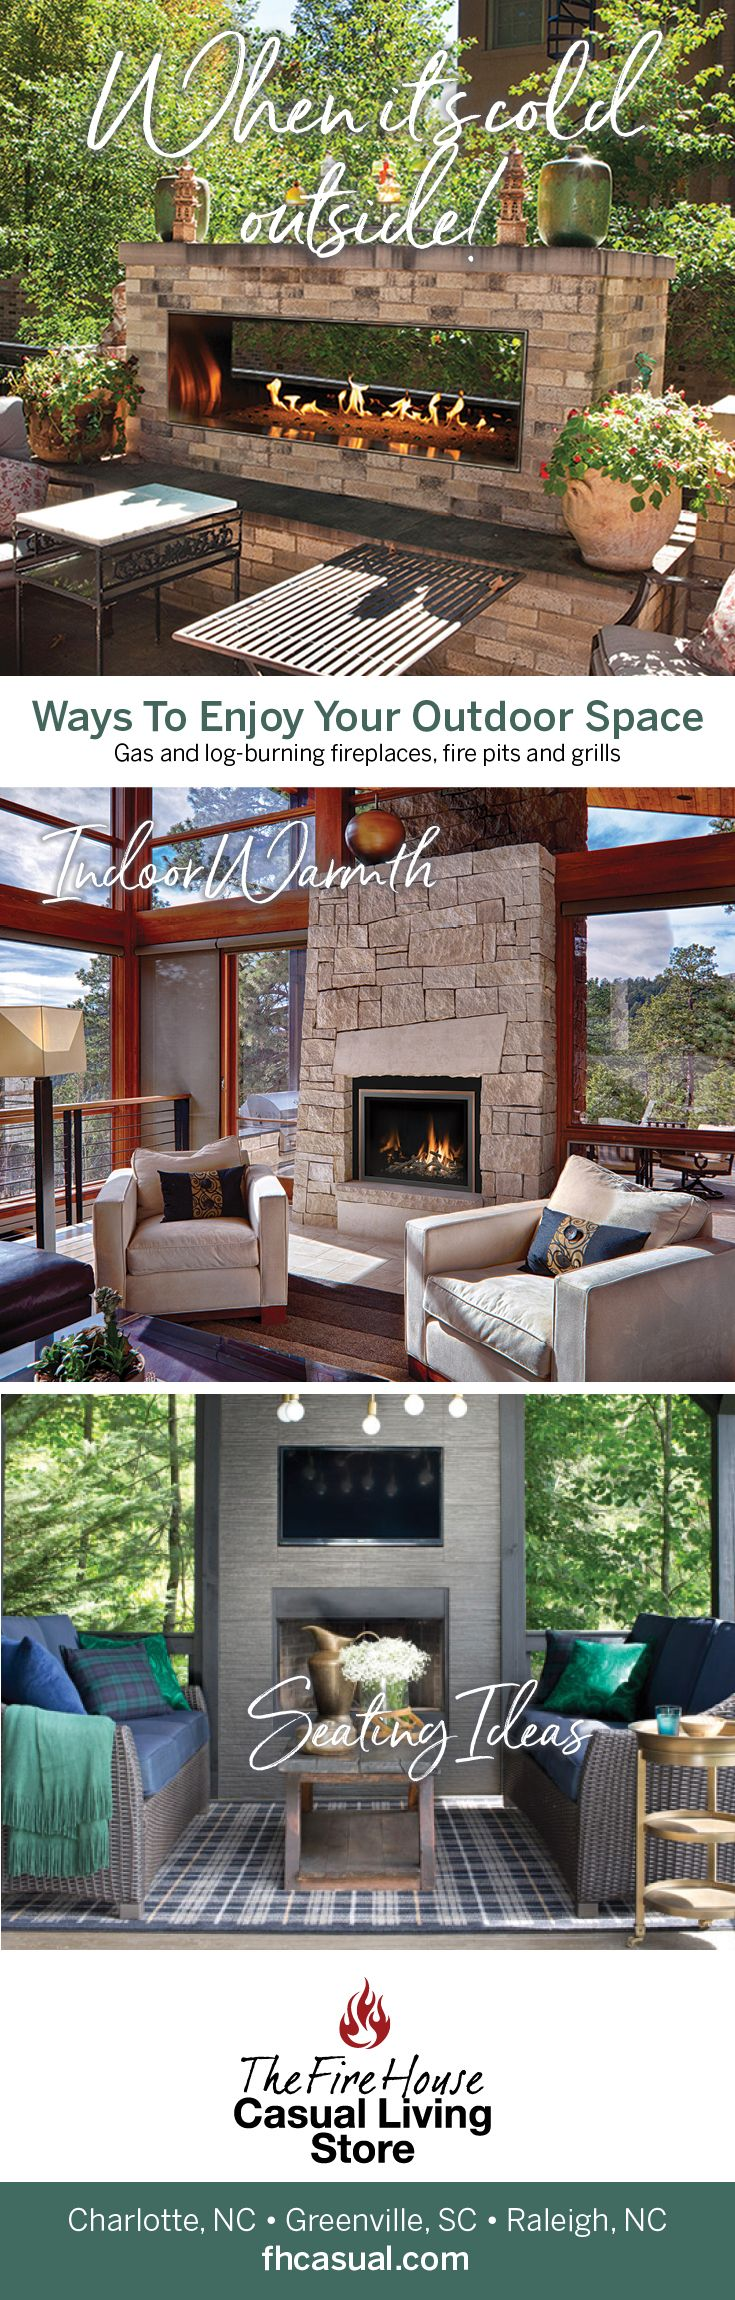 The Fire House Casual Living Store (fhcasual) On Pinterest.